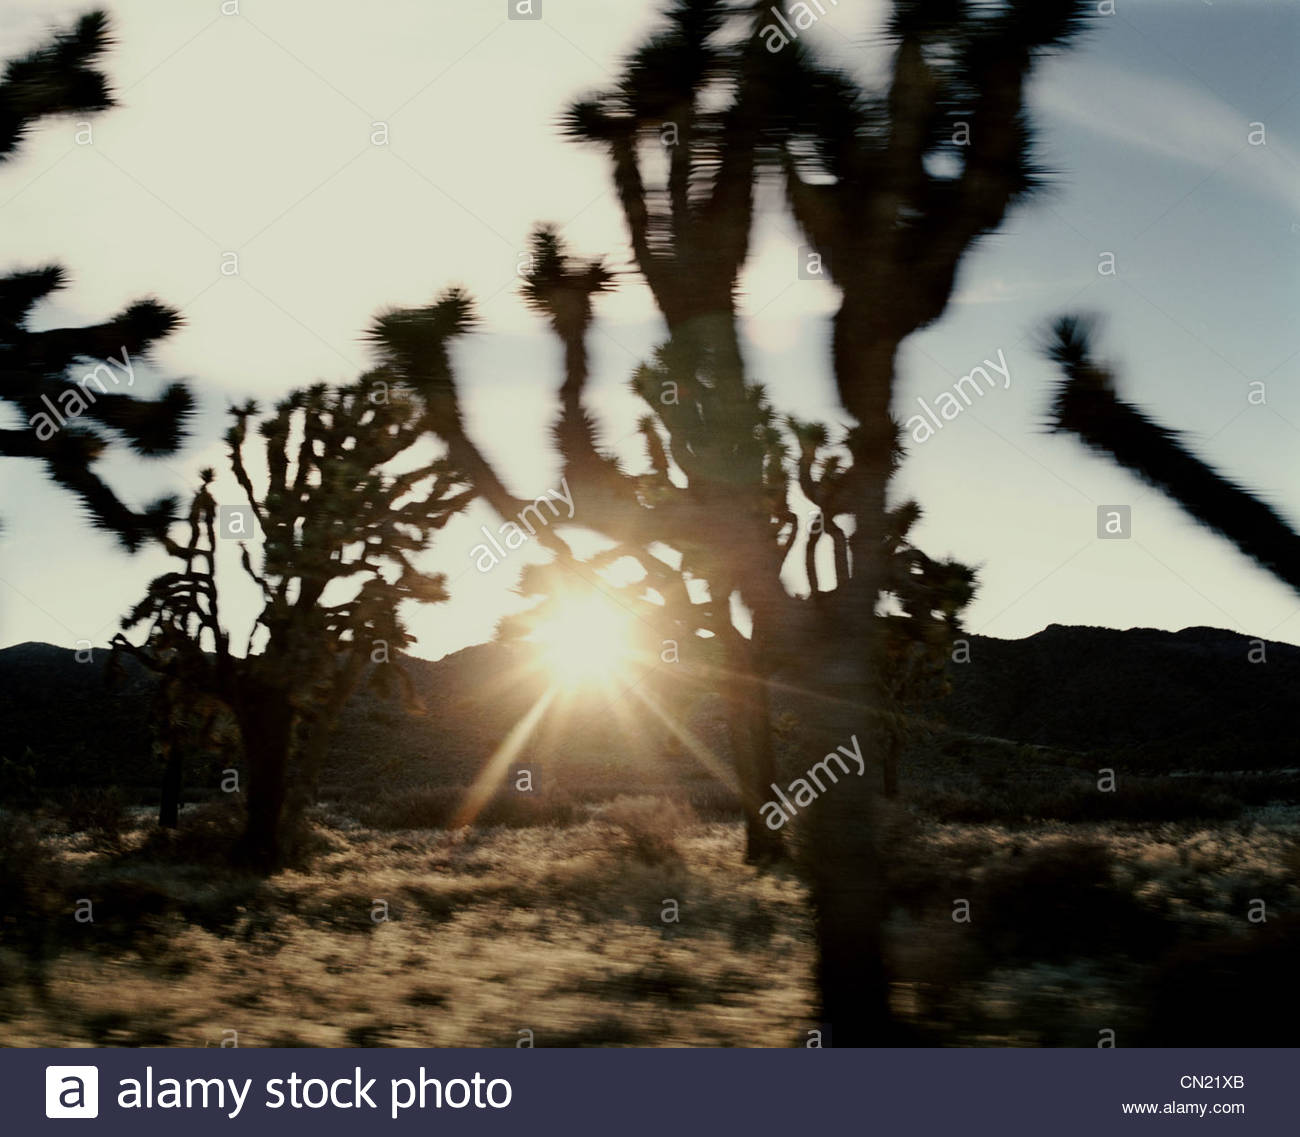 Blurry scenic, Joshua Tree, California, USA - Stock Image